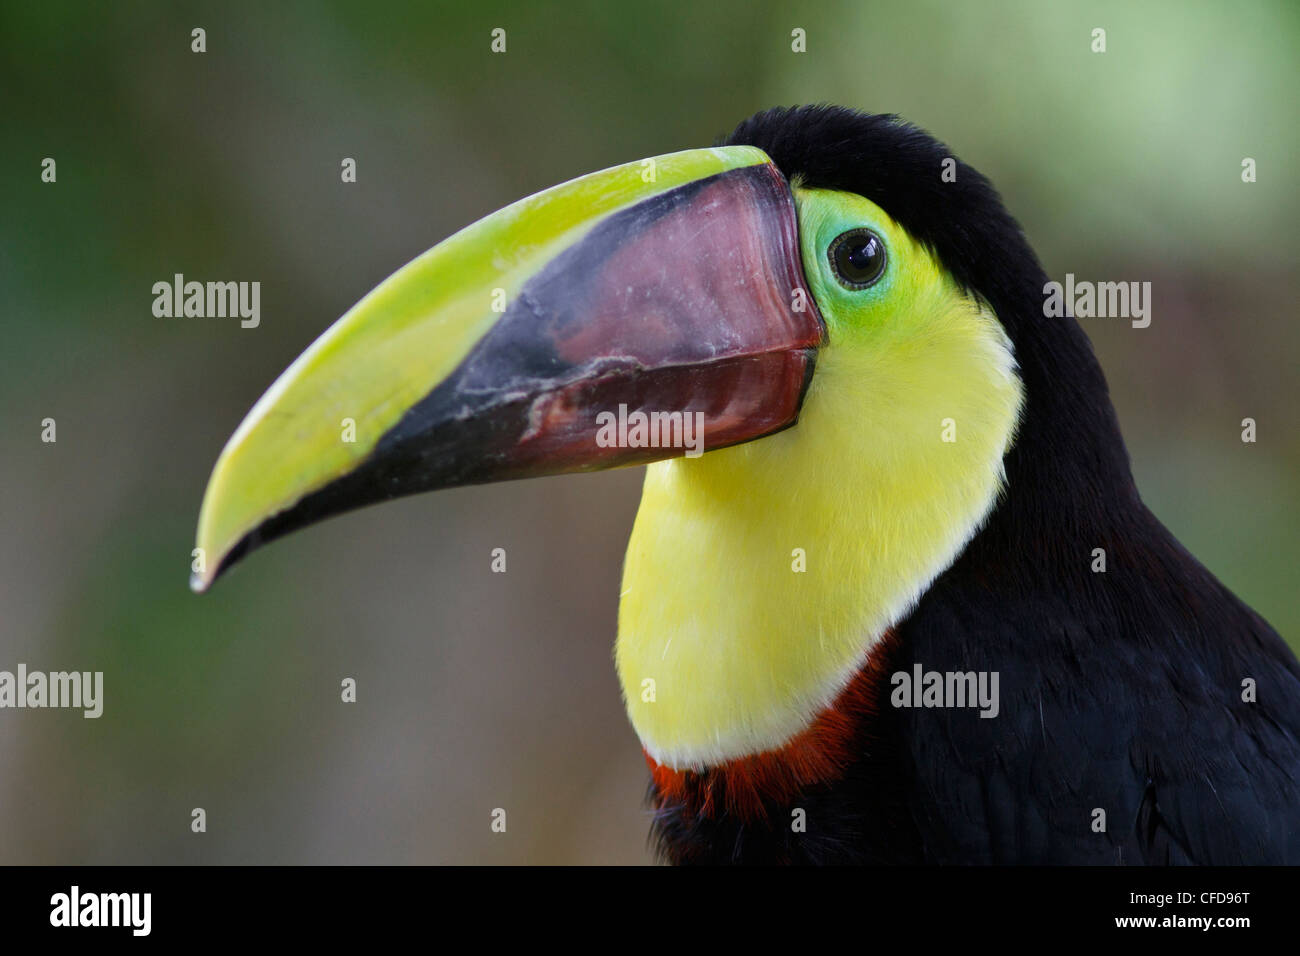 Chestnut-mandibled Toucan (Ramphastos swainsonii) perched on a branch in Costa Rica. Stock Photo